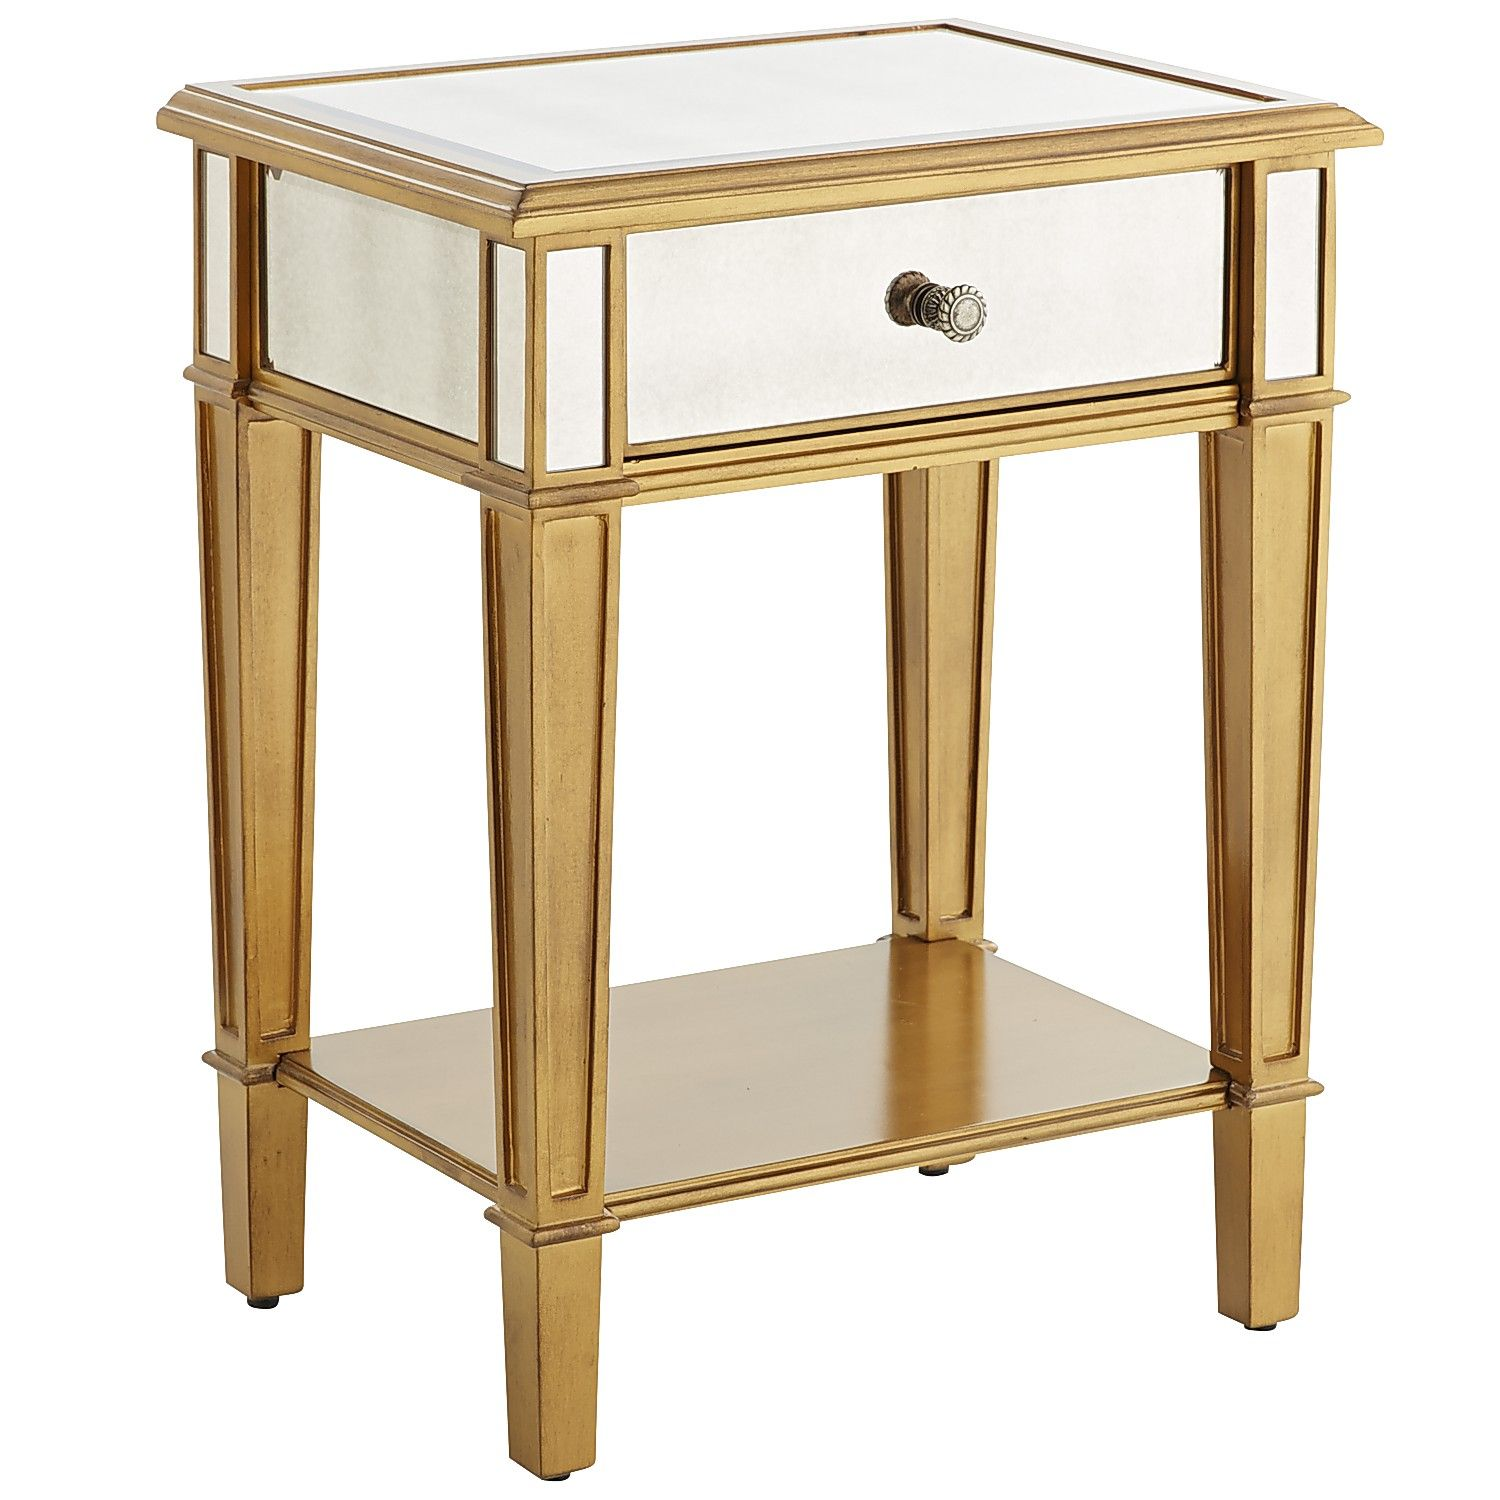 Hayworth Furniture Collection. Hayworth Nightstand   Gold Wood Furniture  Collection E